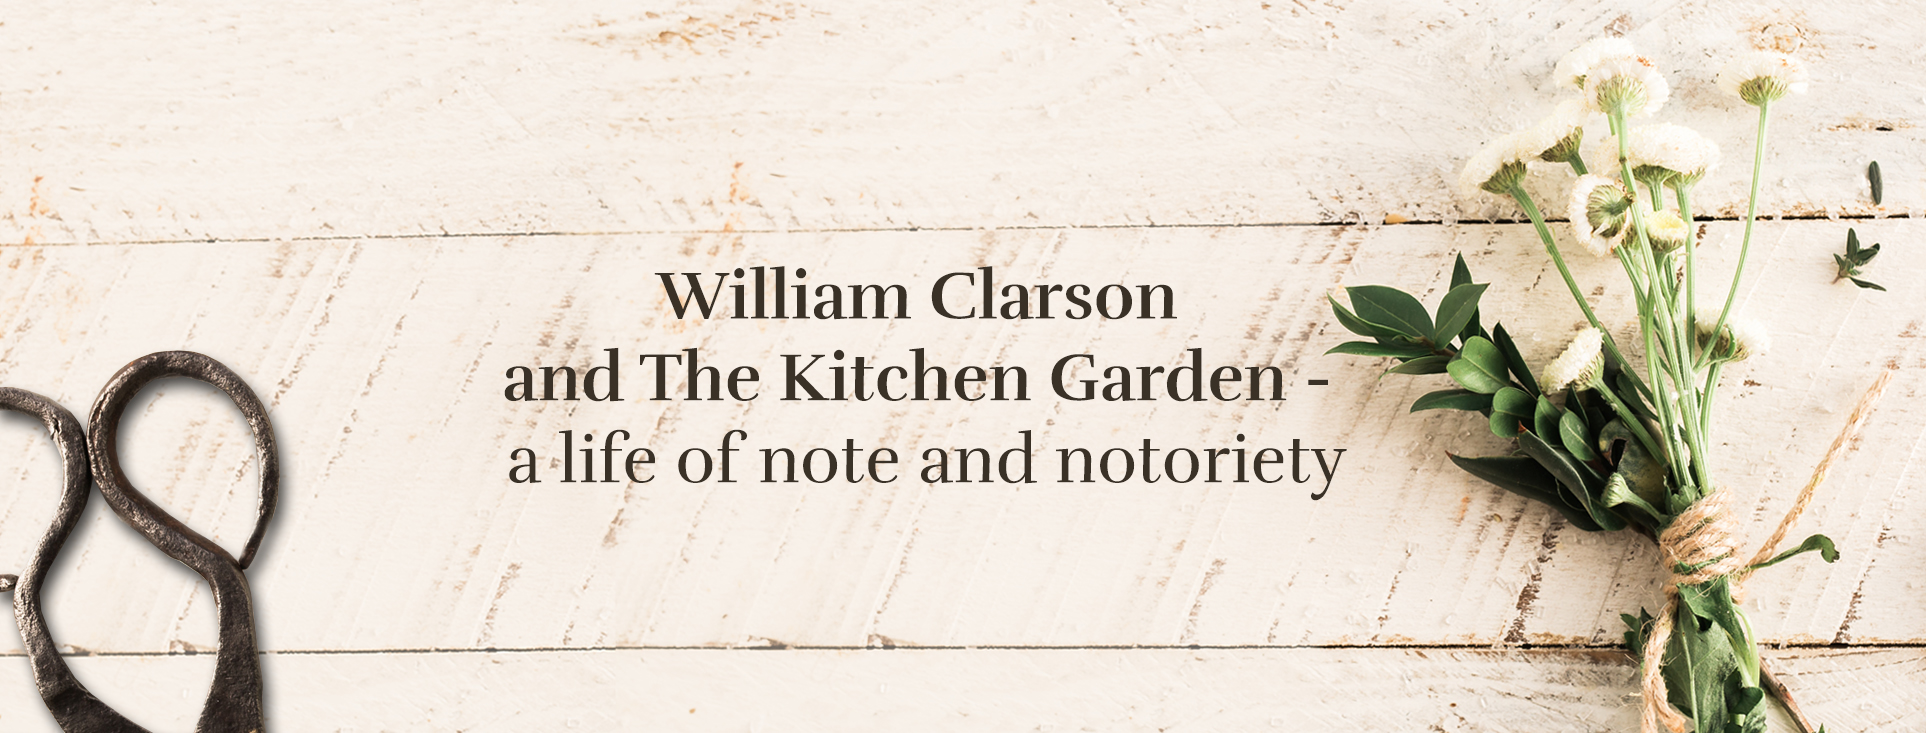 William Clarson and the kitchen garden - a life of note and notoriety